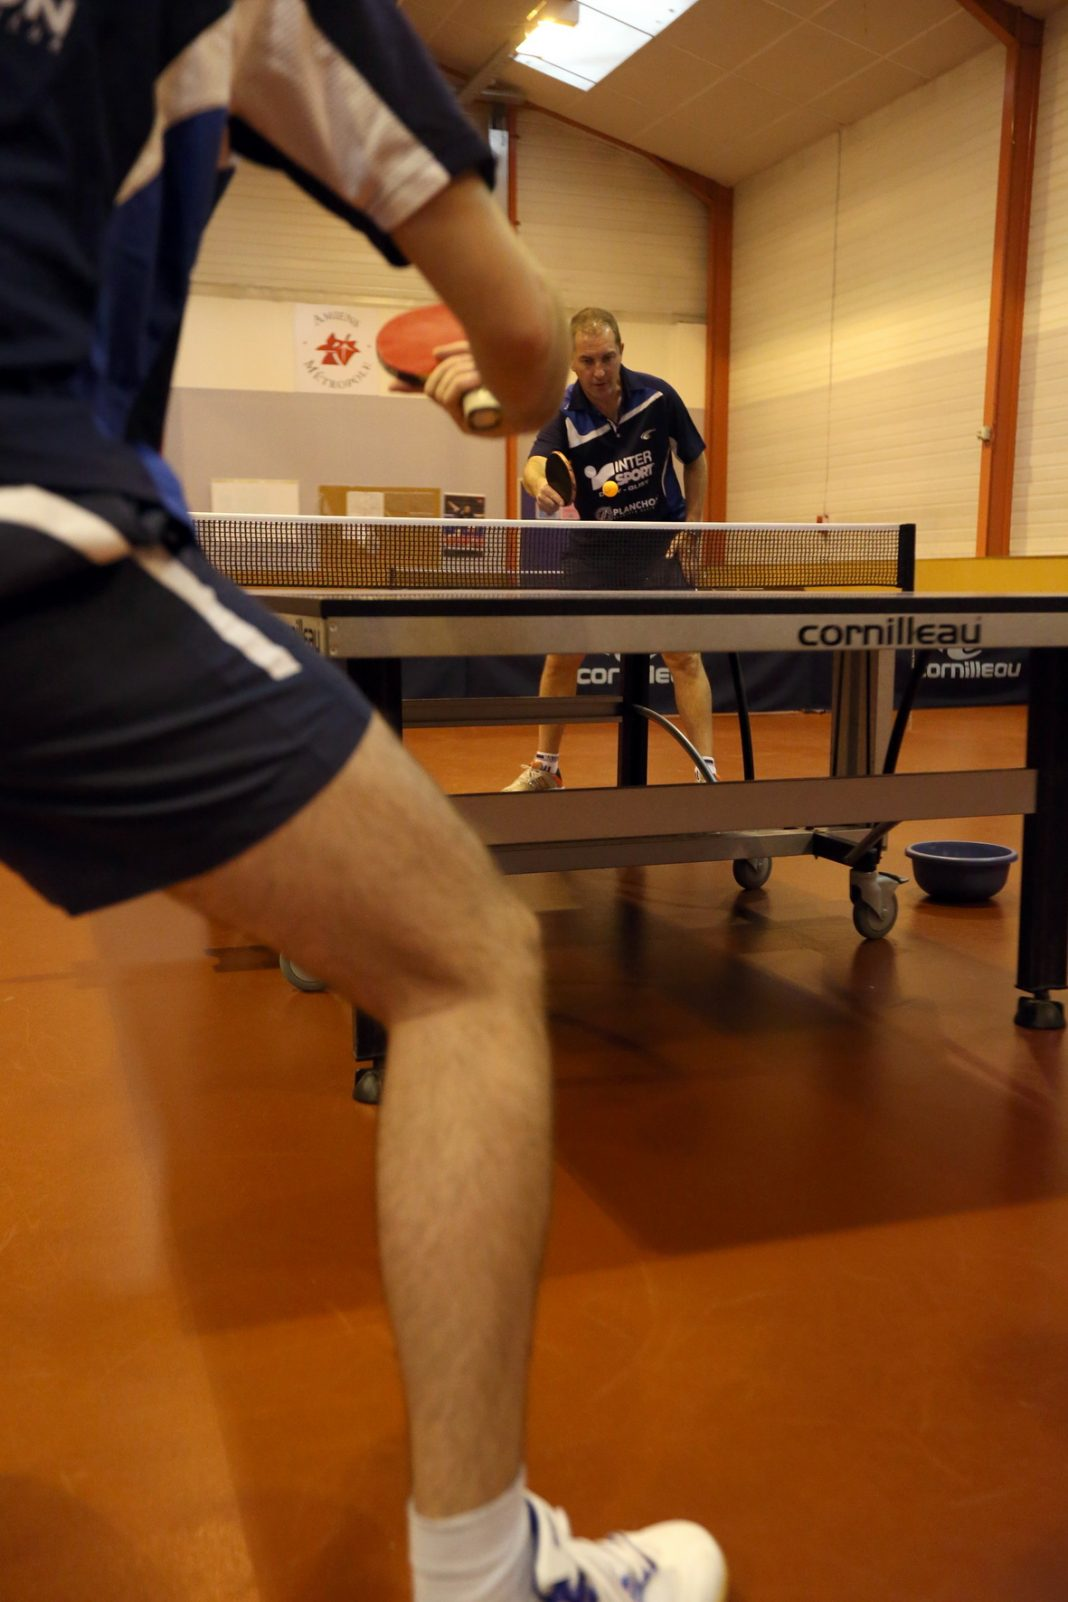 astt-tennis de table amiens 0100 - leandre leber - gazettesports